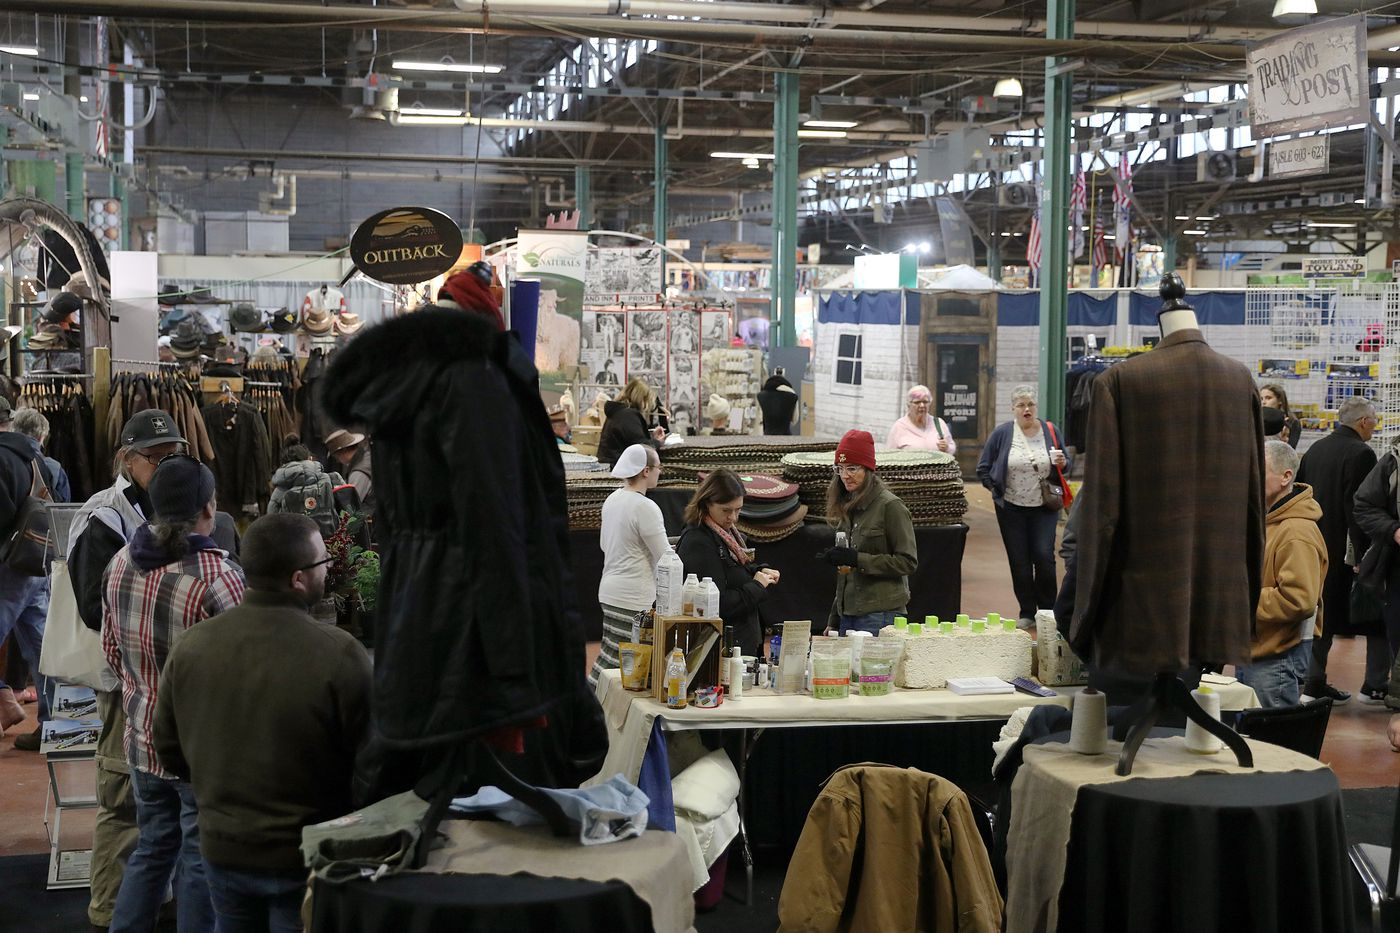 Attendees browse the Pennsylvania Hemp Industry Council's exhibit, which includes examples of hemp clothing, during the annual Pennsylvania Farm Show in the Pennsylvania Farm Show Complex & Expo Center in Harrisburg, Pa., on Tuesday, Jan. 7, 2020.